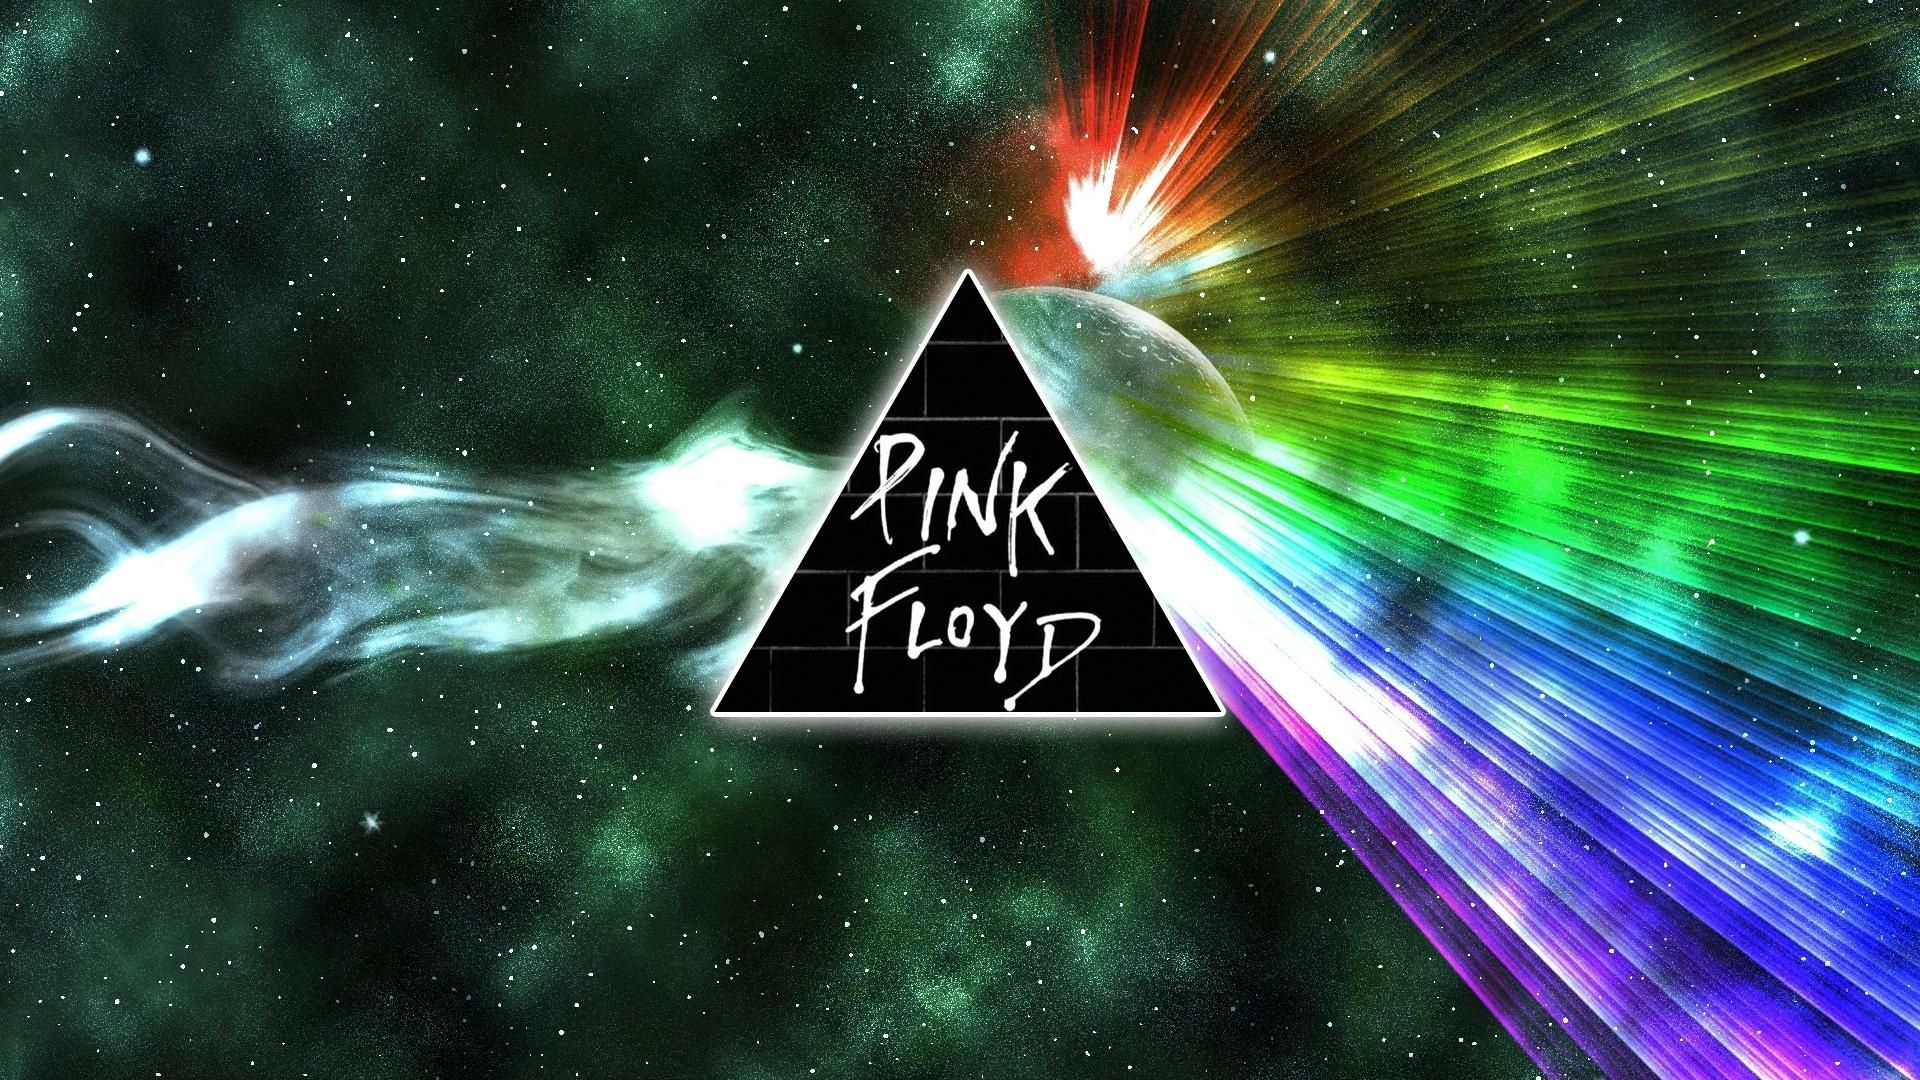 Pics Photos   Pink Floyd Wallpapers Download 1920x1080